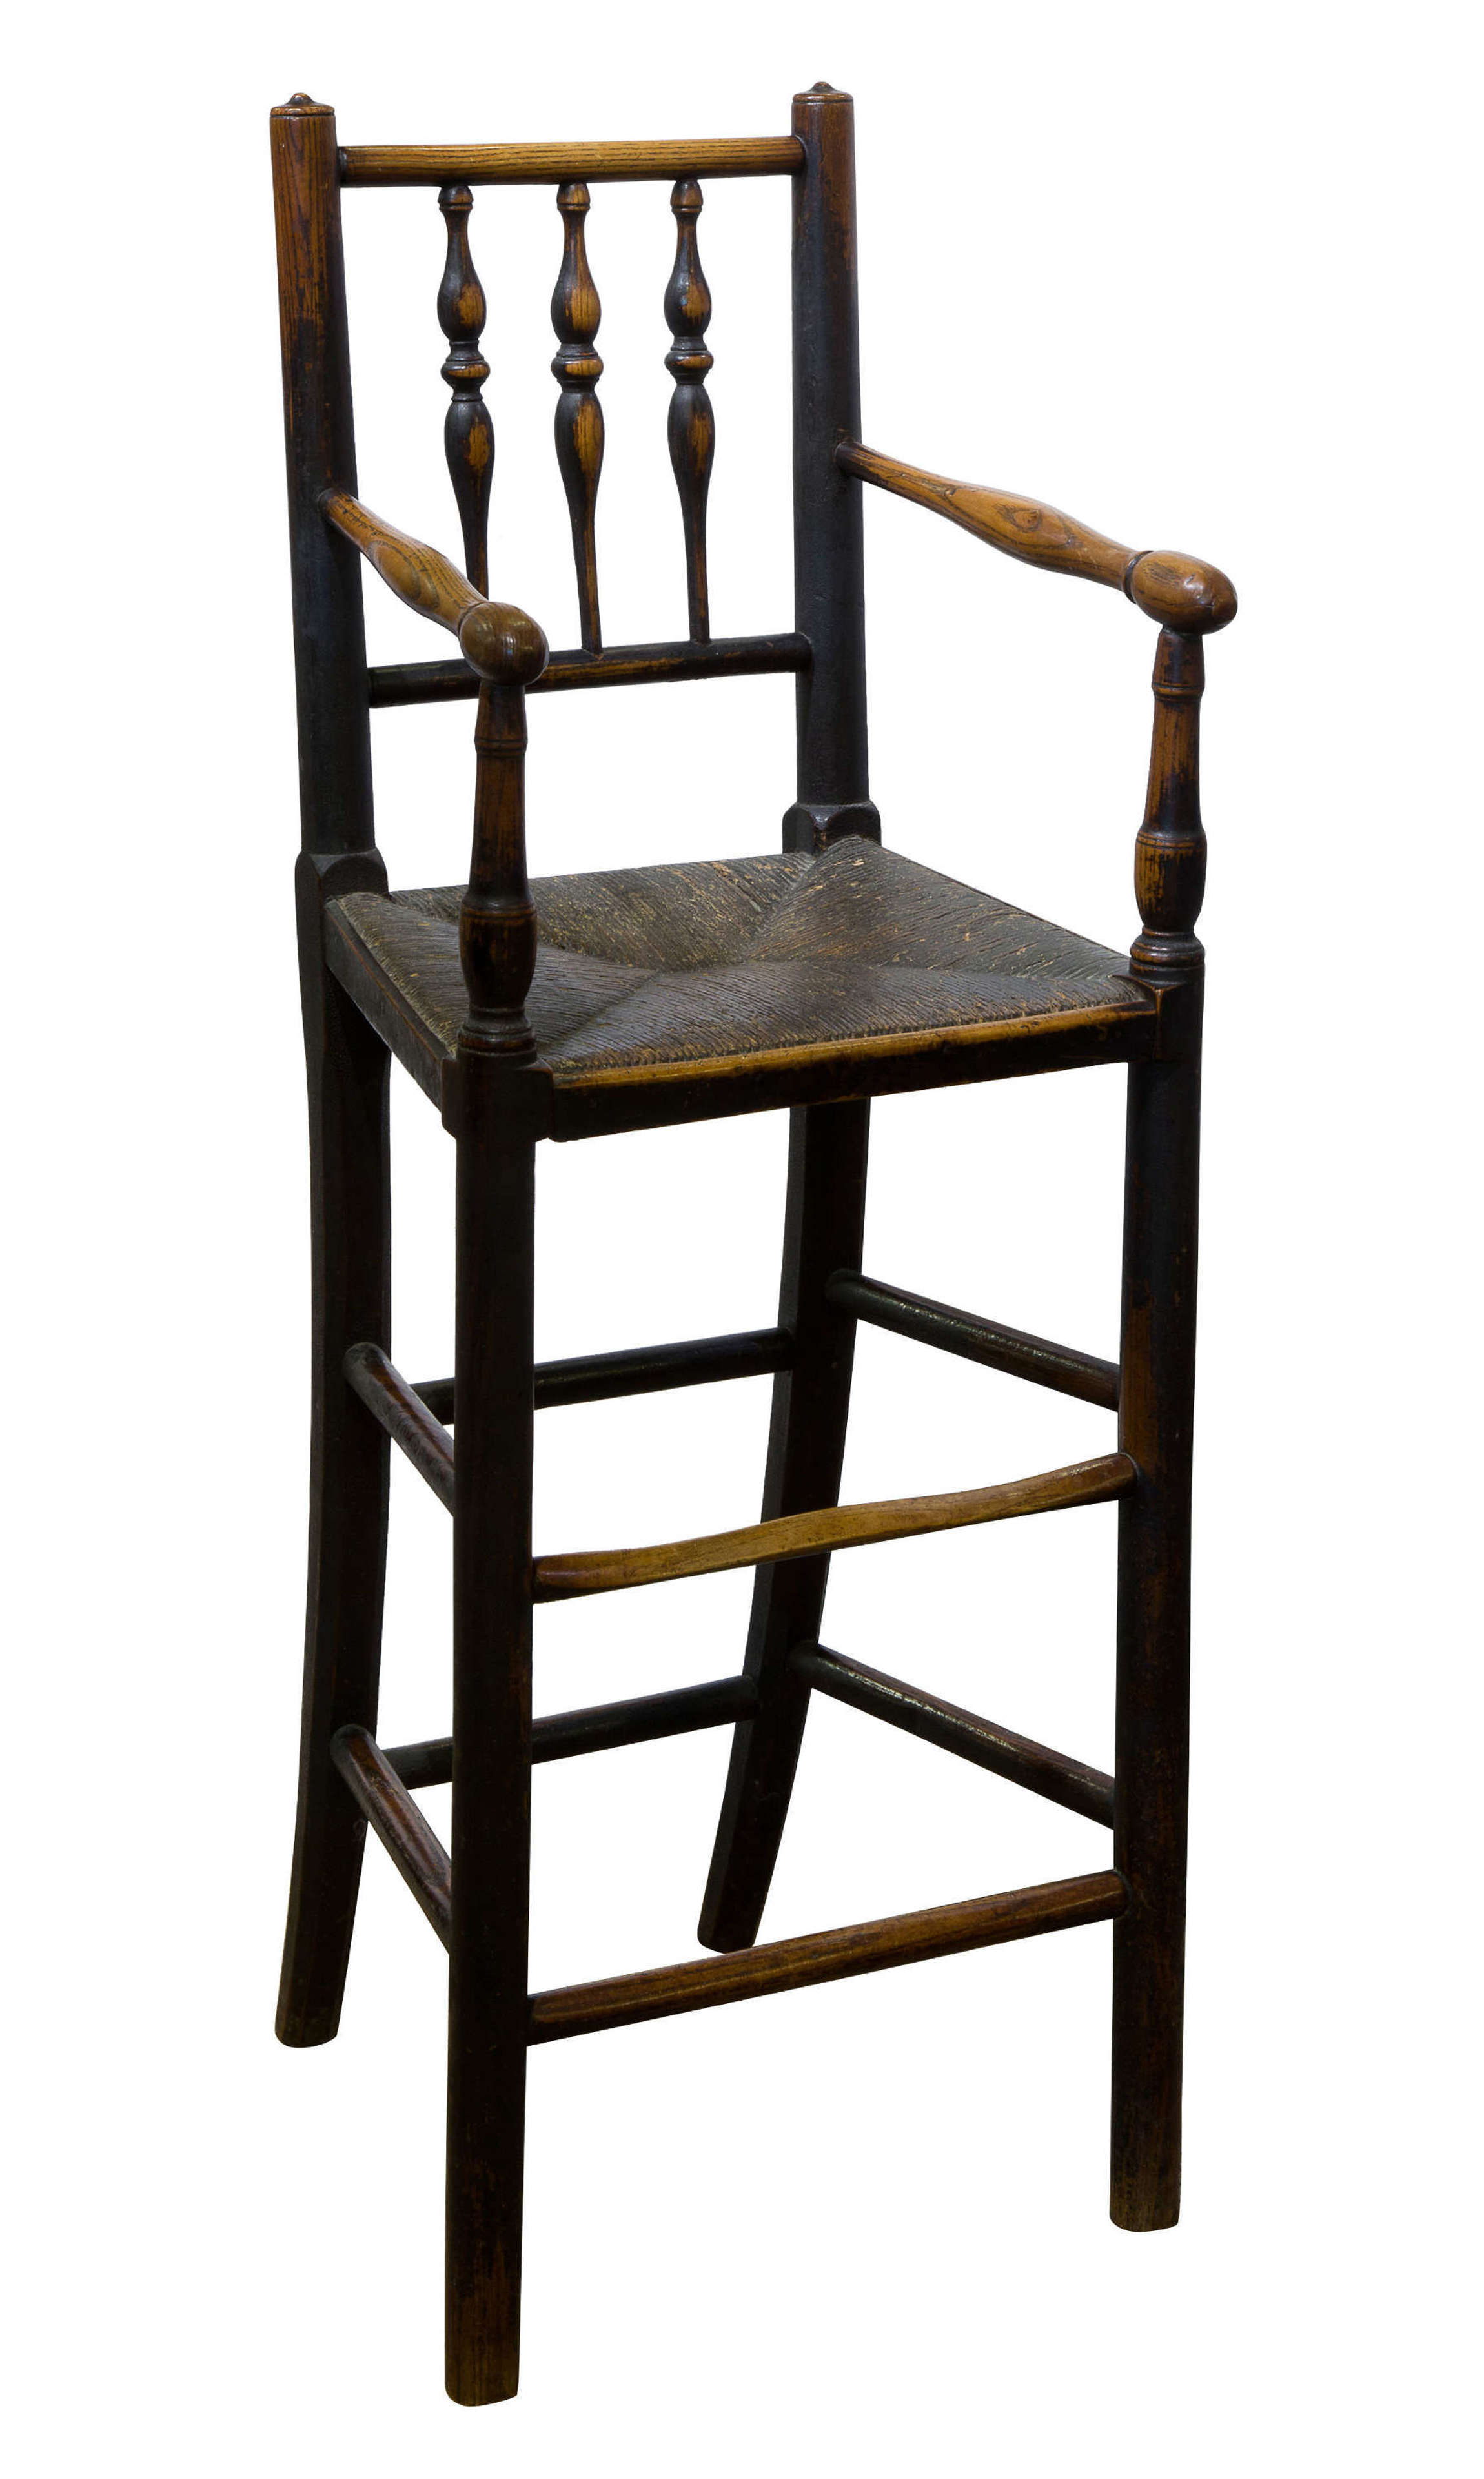 Early 19th Century turned Ash spindle back child's chair